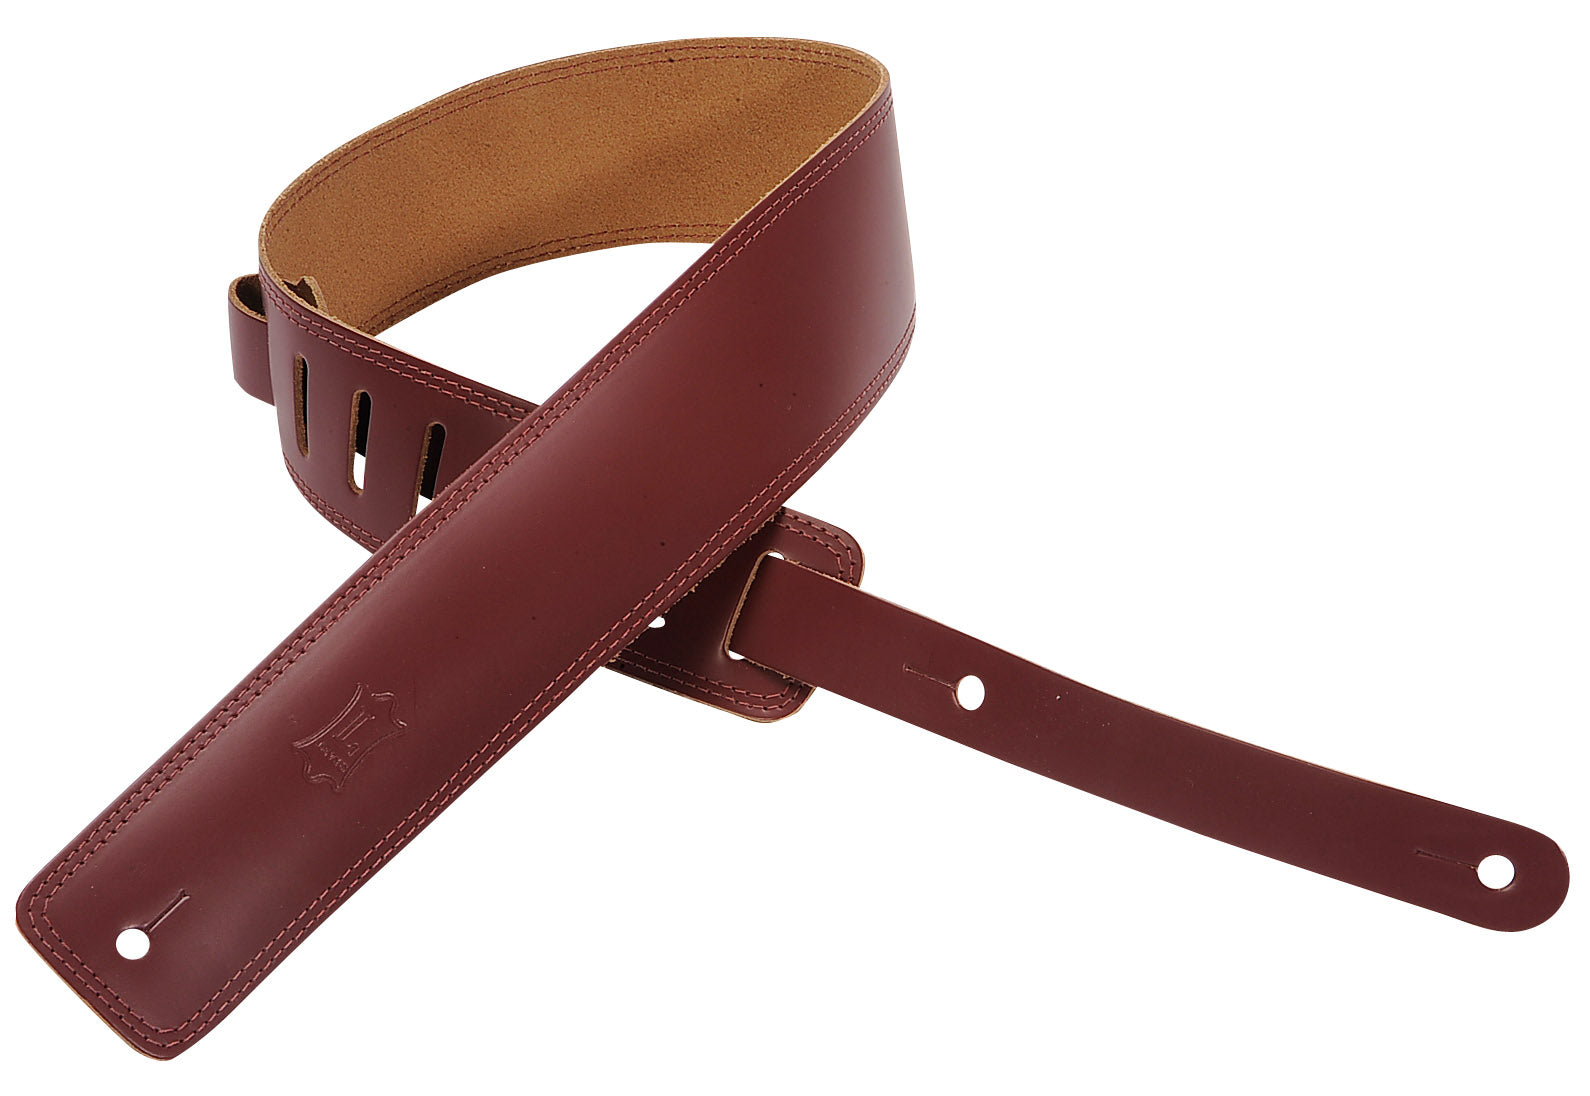 "LEVY'S 2.5"" LEATHER GUITAR STRAP WITH DOUBLE STITCH BURGANDY"